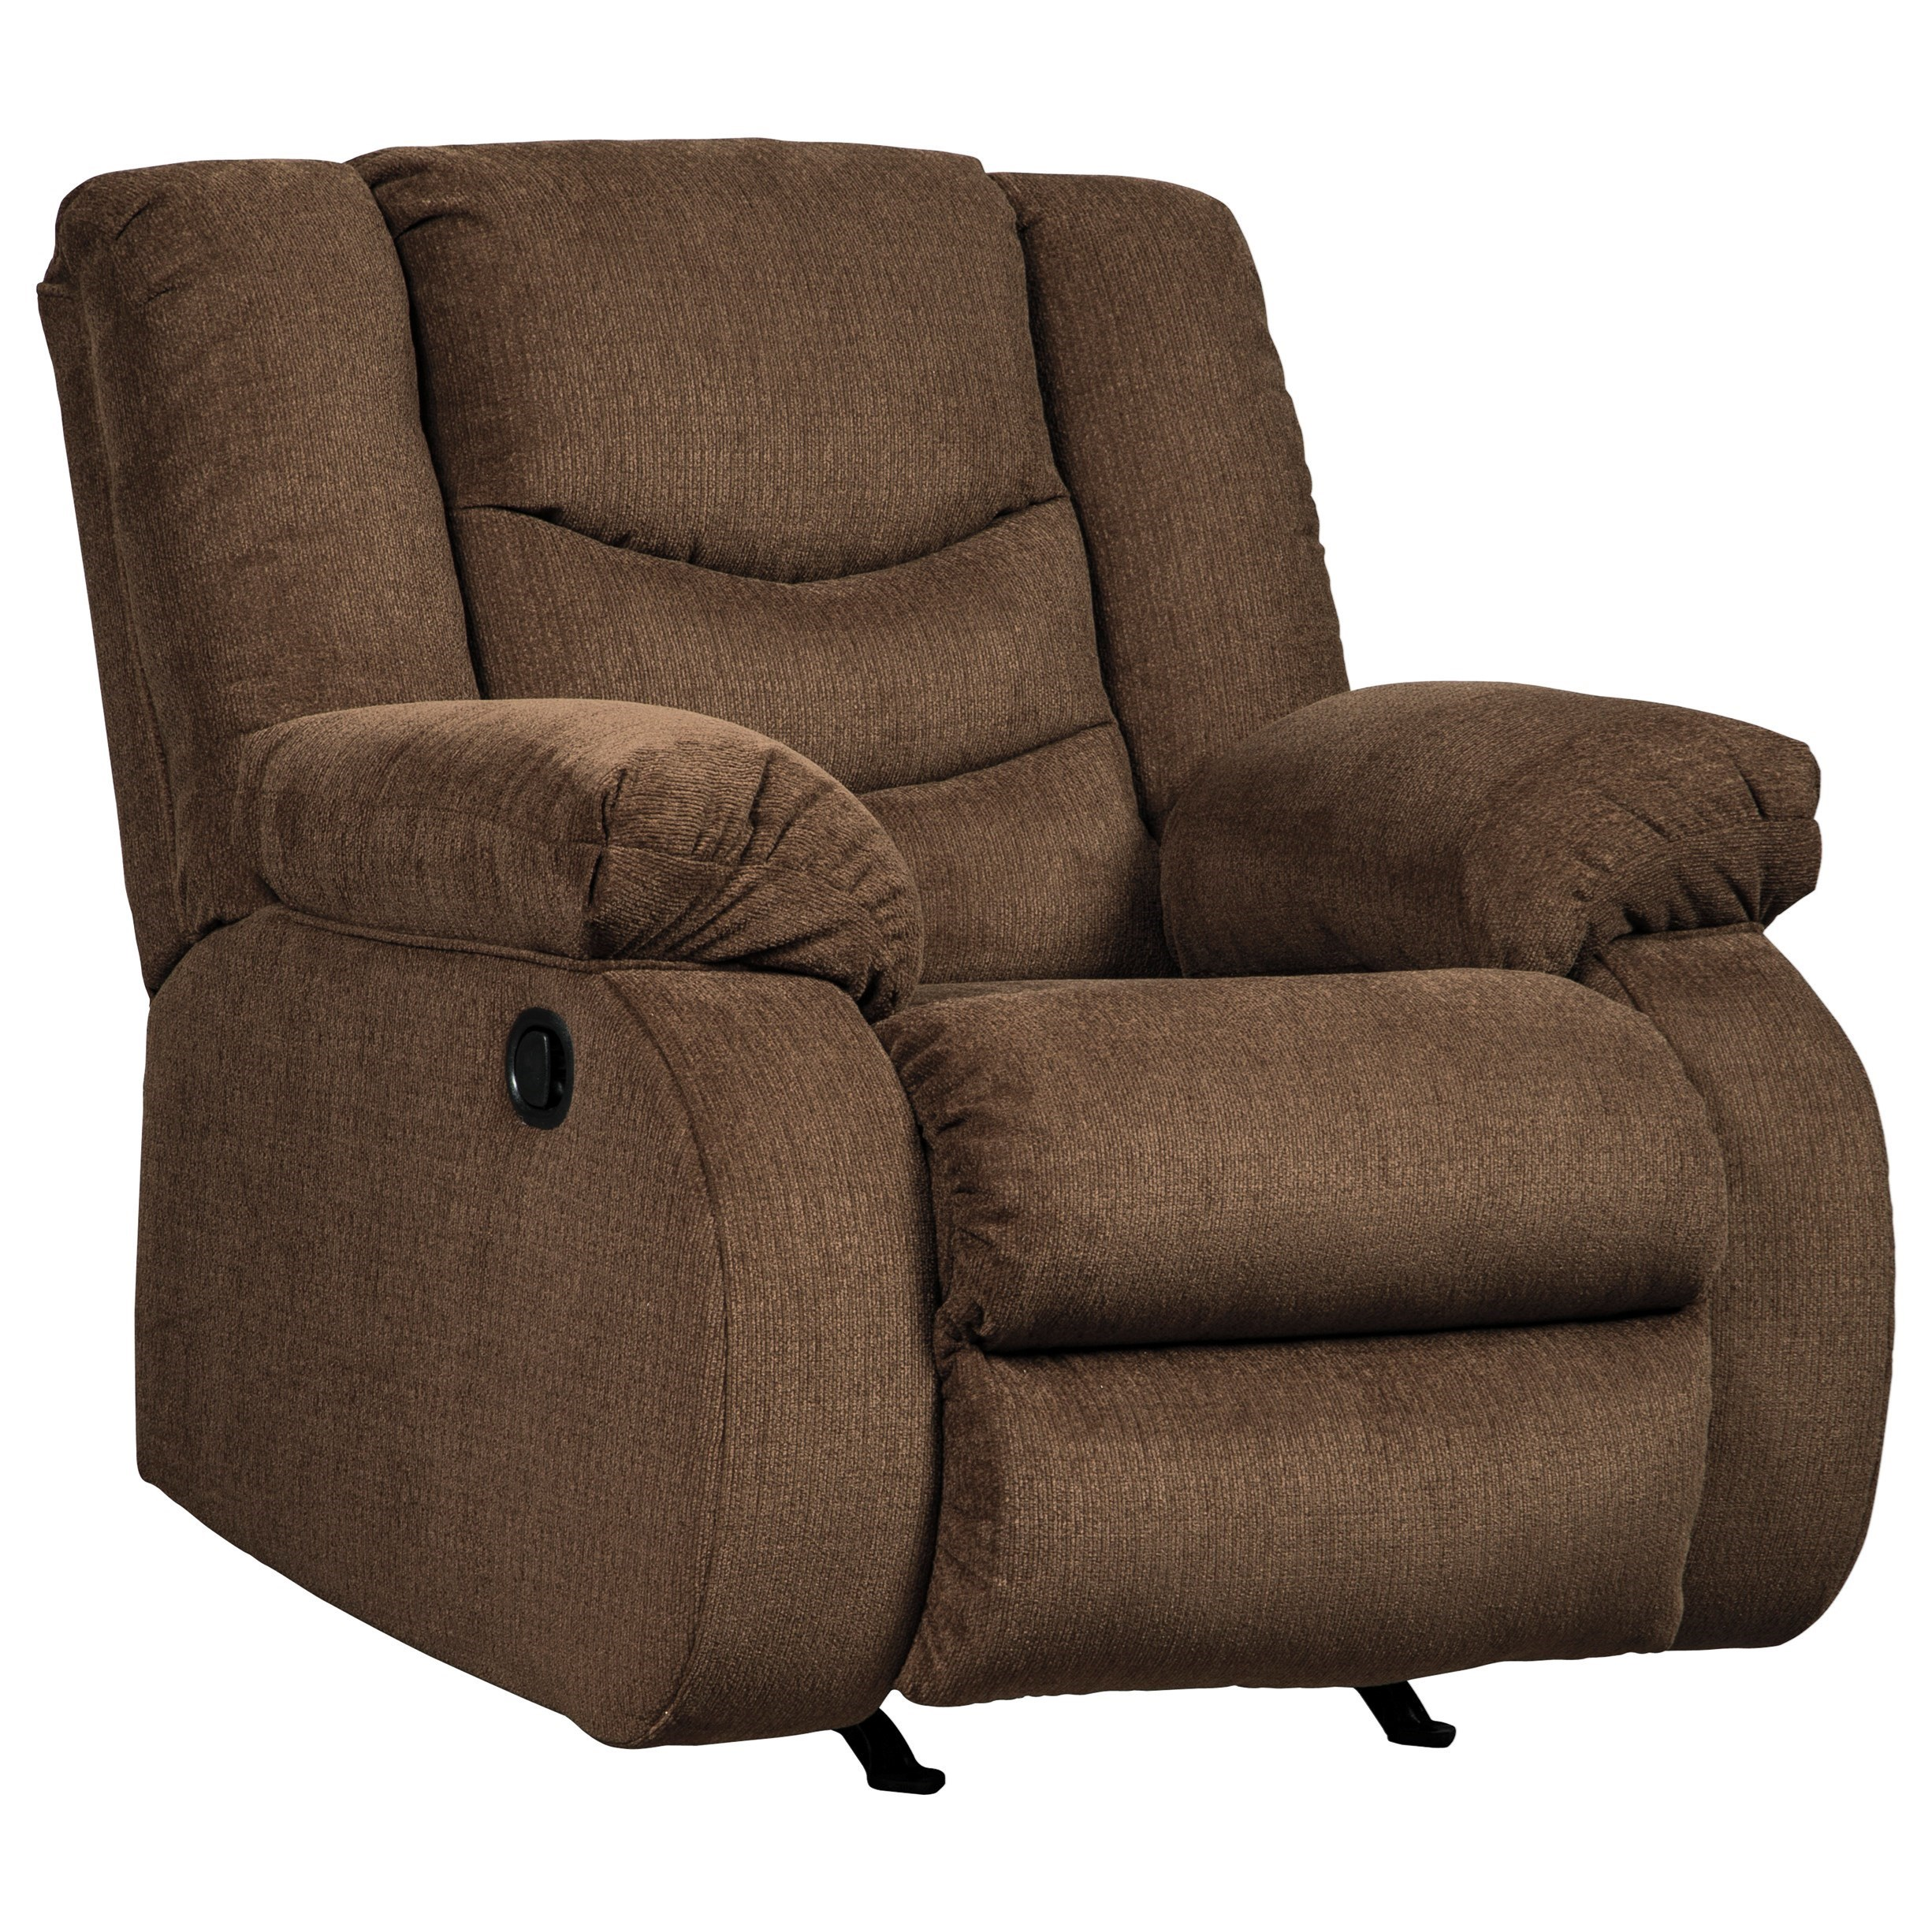 Tulen Rocker Recliner by Signature Design by Ashley at Darvin Furniture